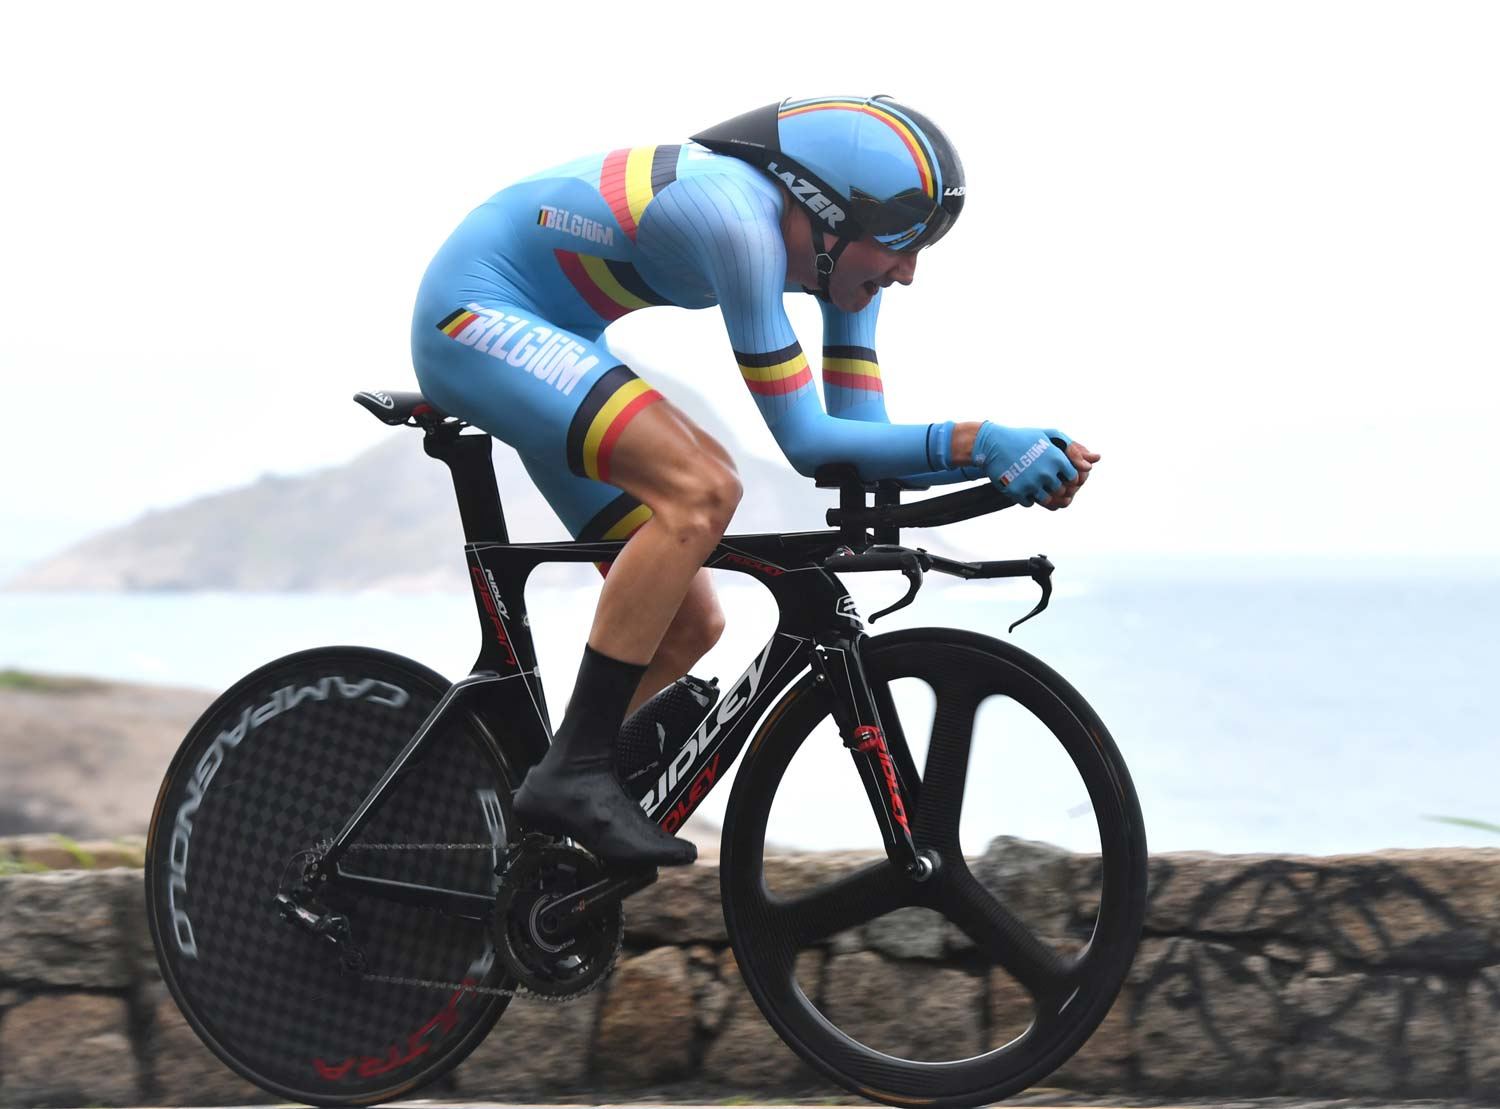 Tim Wellens was in the first wave of starters in the Olympic TT. Lazer helmets have created some innovative new shapes and we can expect to see new products on the track but the roadies are using designs seen before the Rio Games. Photo: Graham Watson